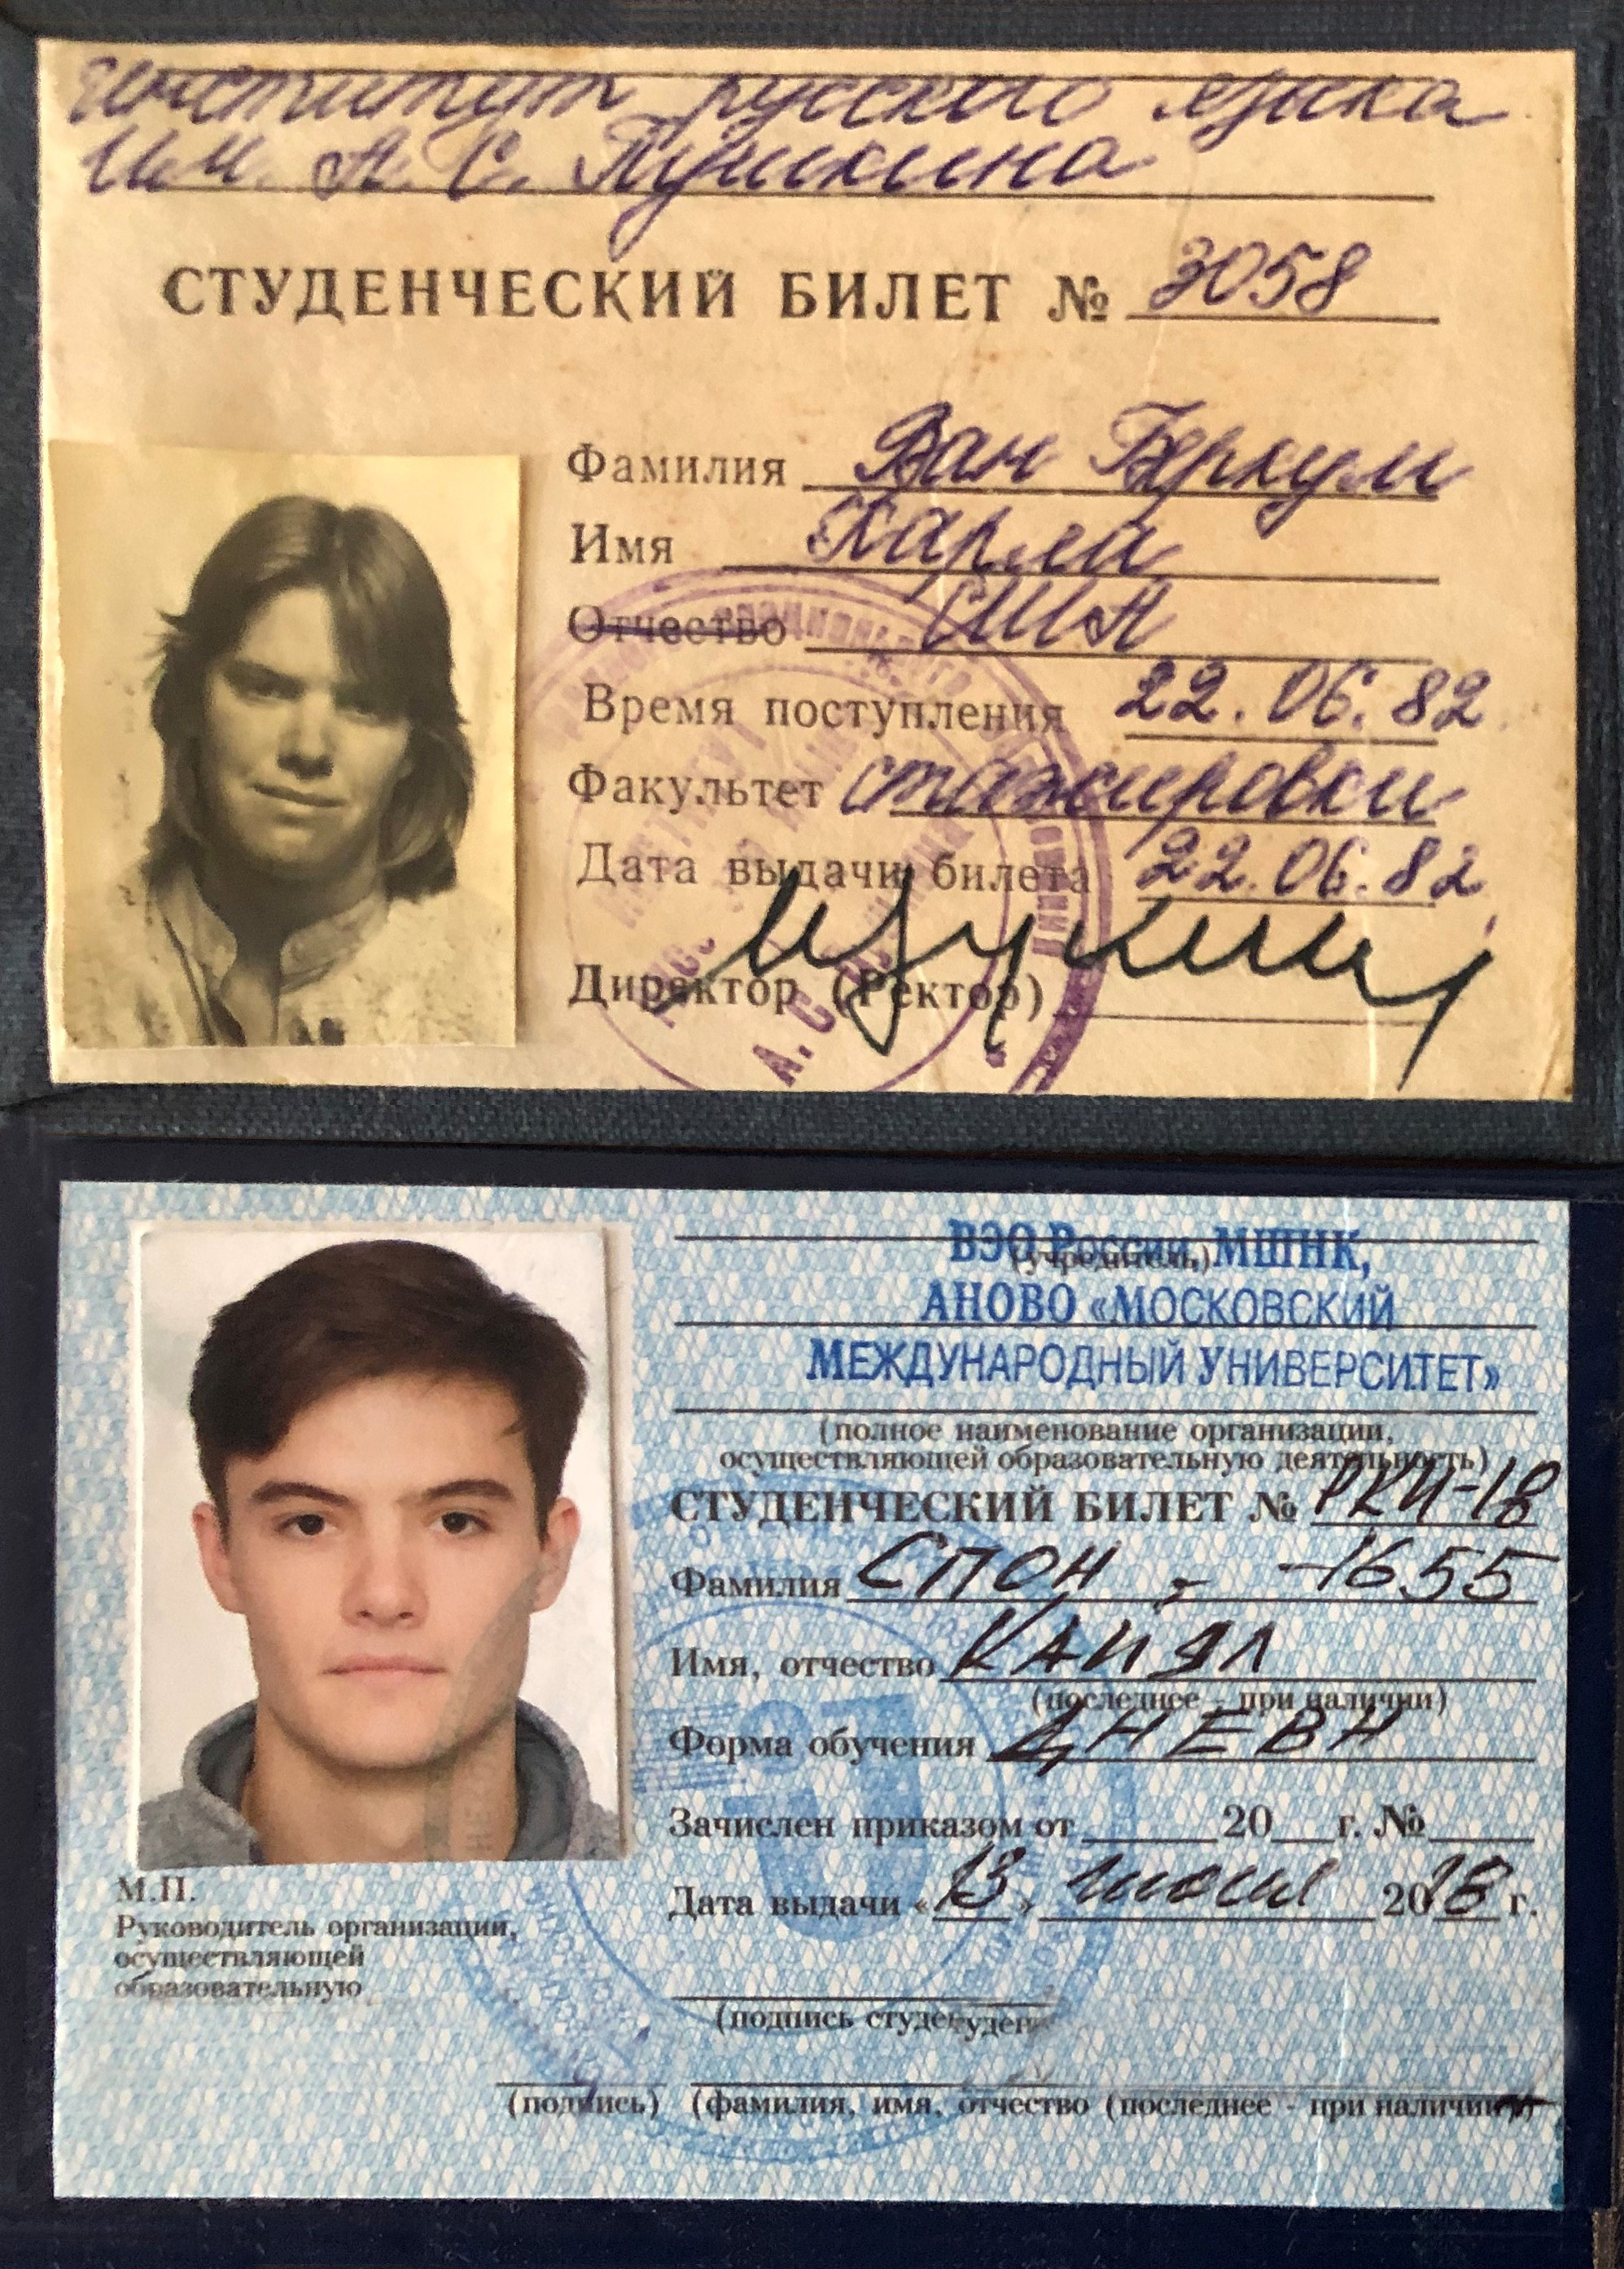 Two student IDs, issued 37 years apart. Carla's ID and Kyle's below it.